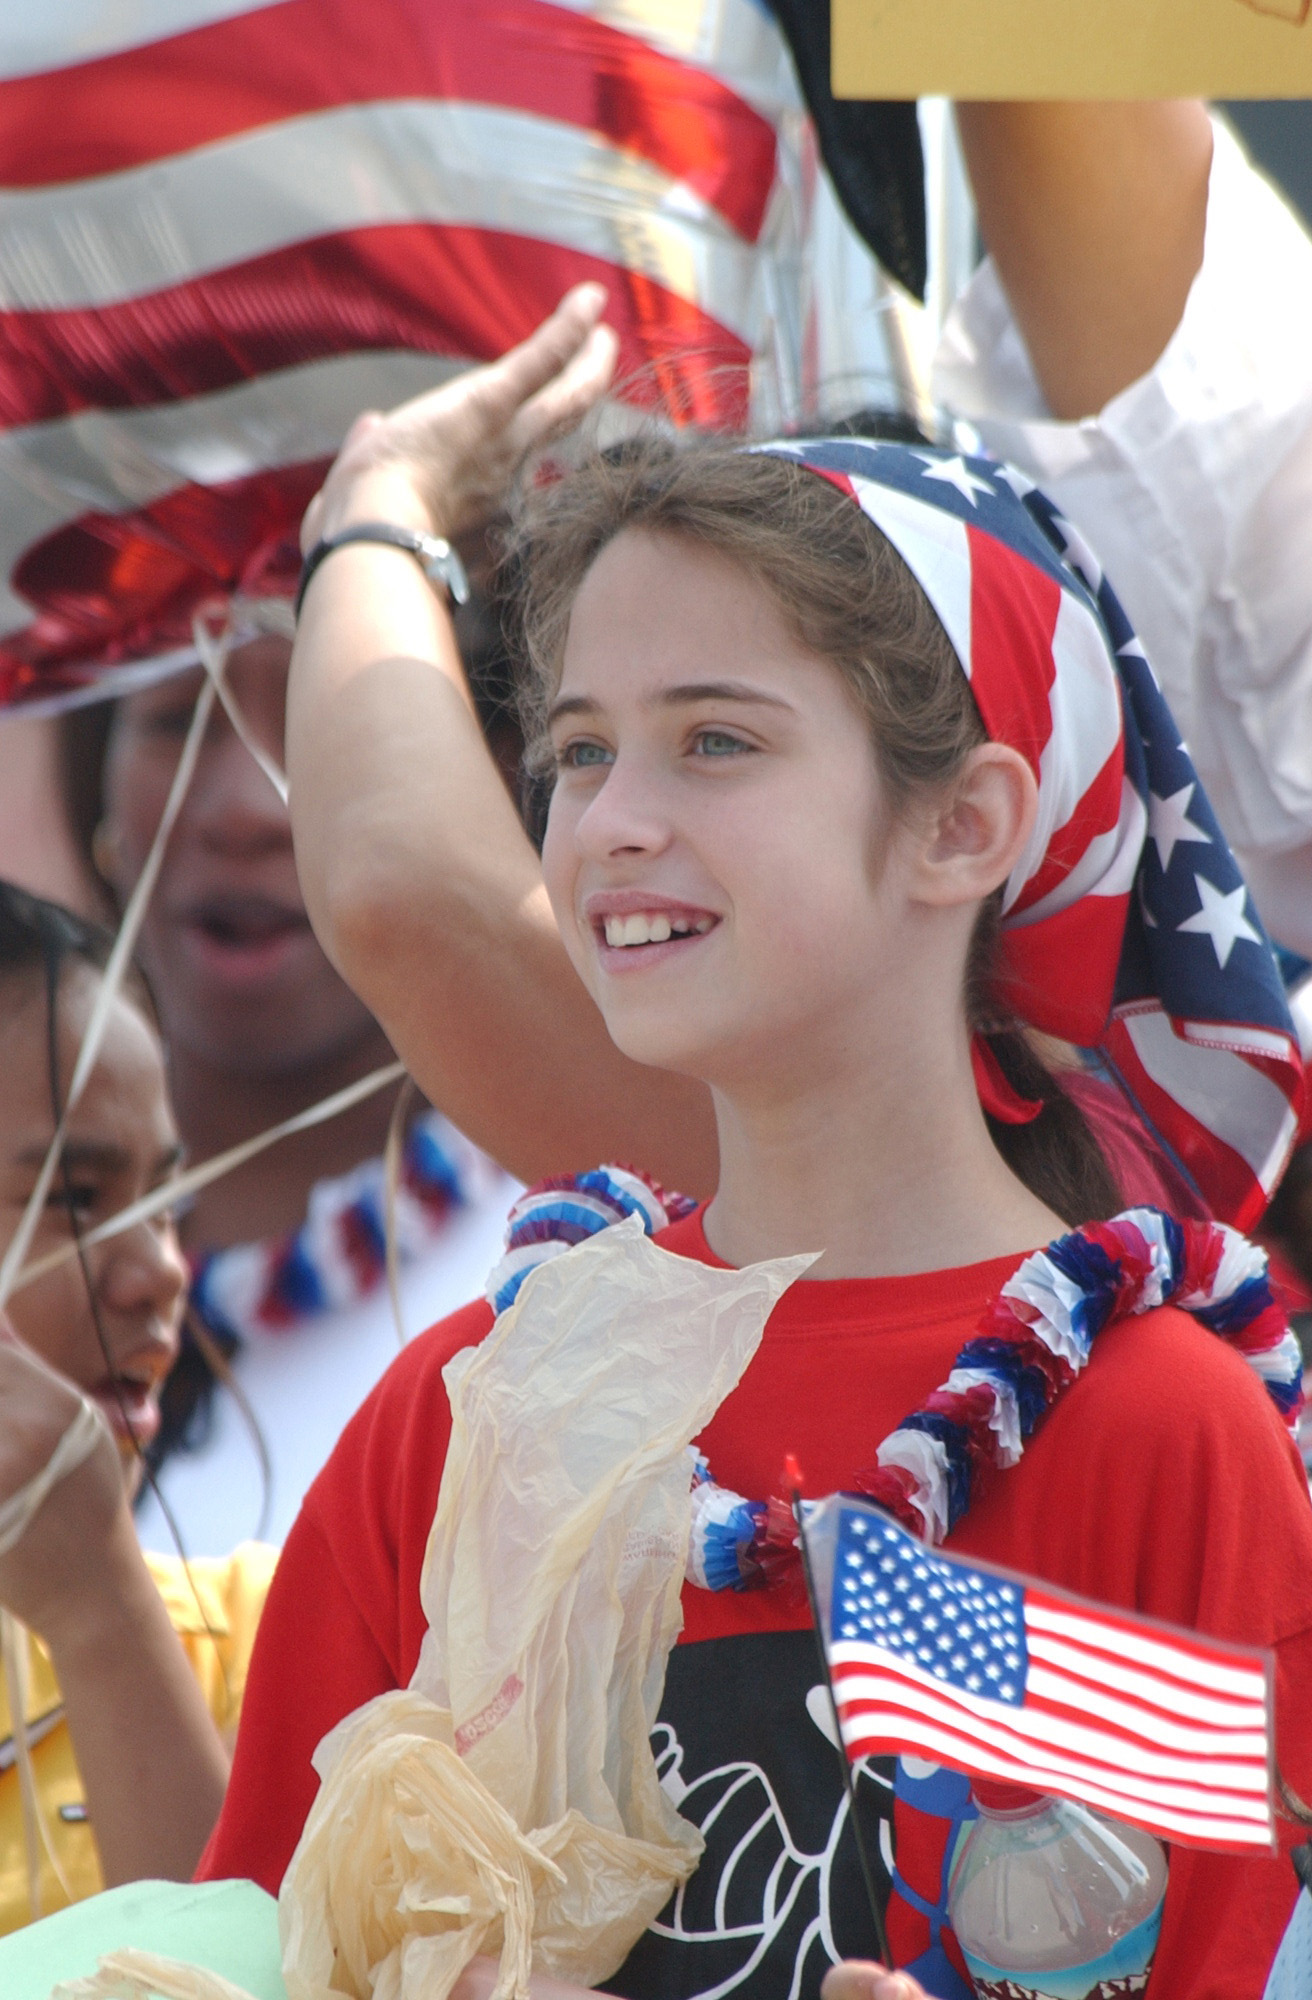 6811l 057 a young girl proudly wears the colors of the united states